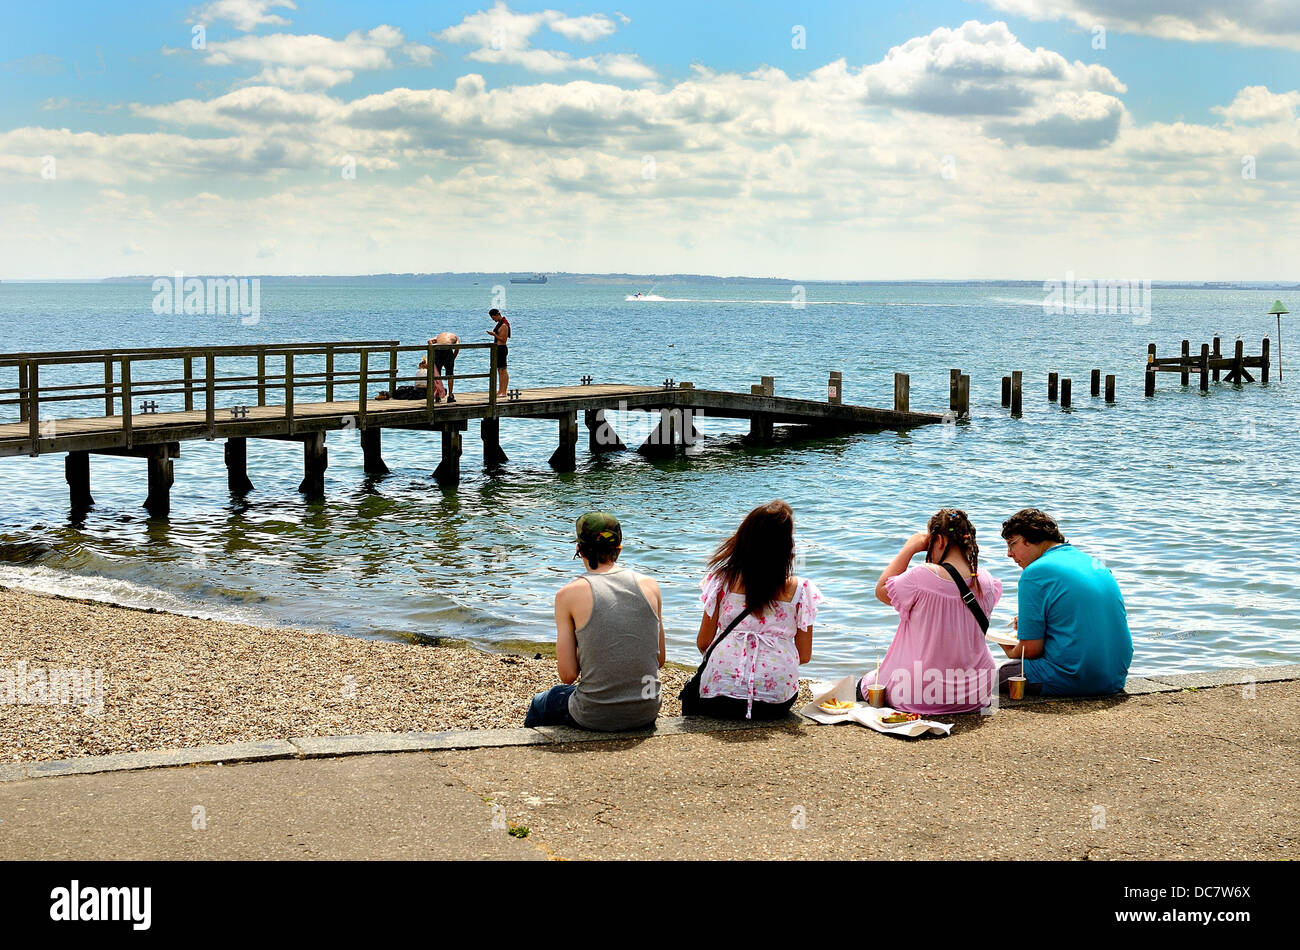 Seafront in summertime at Southend on Sea Essex UK - Stock Image